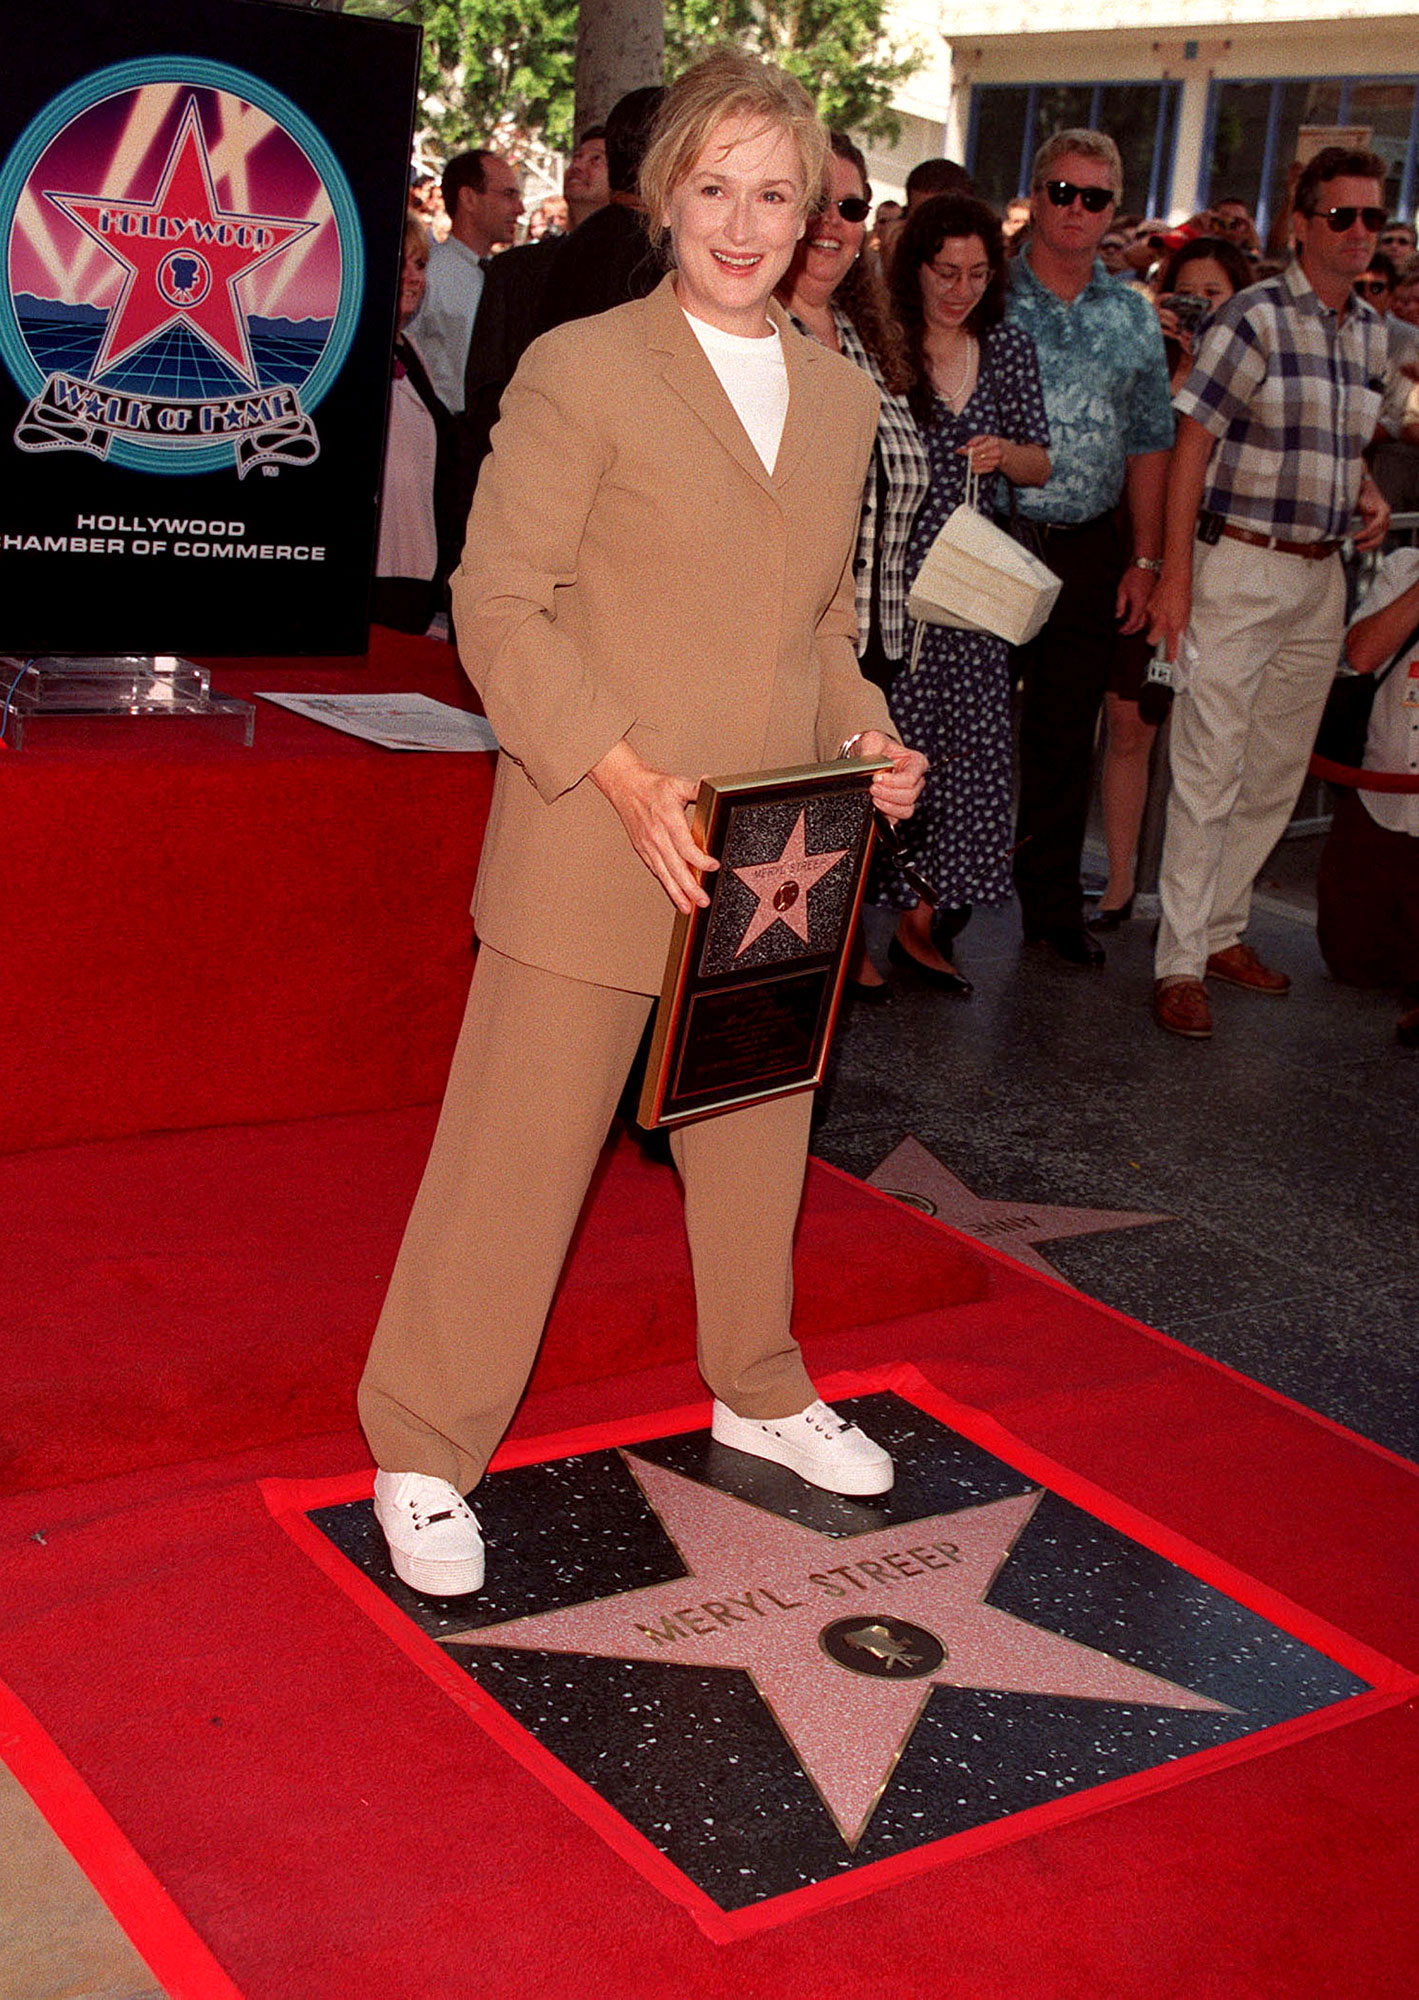 Meryl Streep Walk Of Fame White Sneakers Brown Suit - Too cool for school! The icon was '90s perfection when she received her star on the Hollywood Walk of Fame in September 1998.